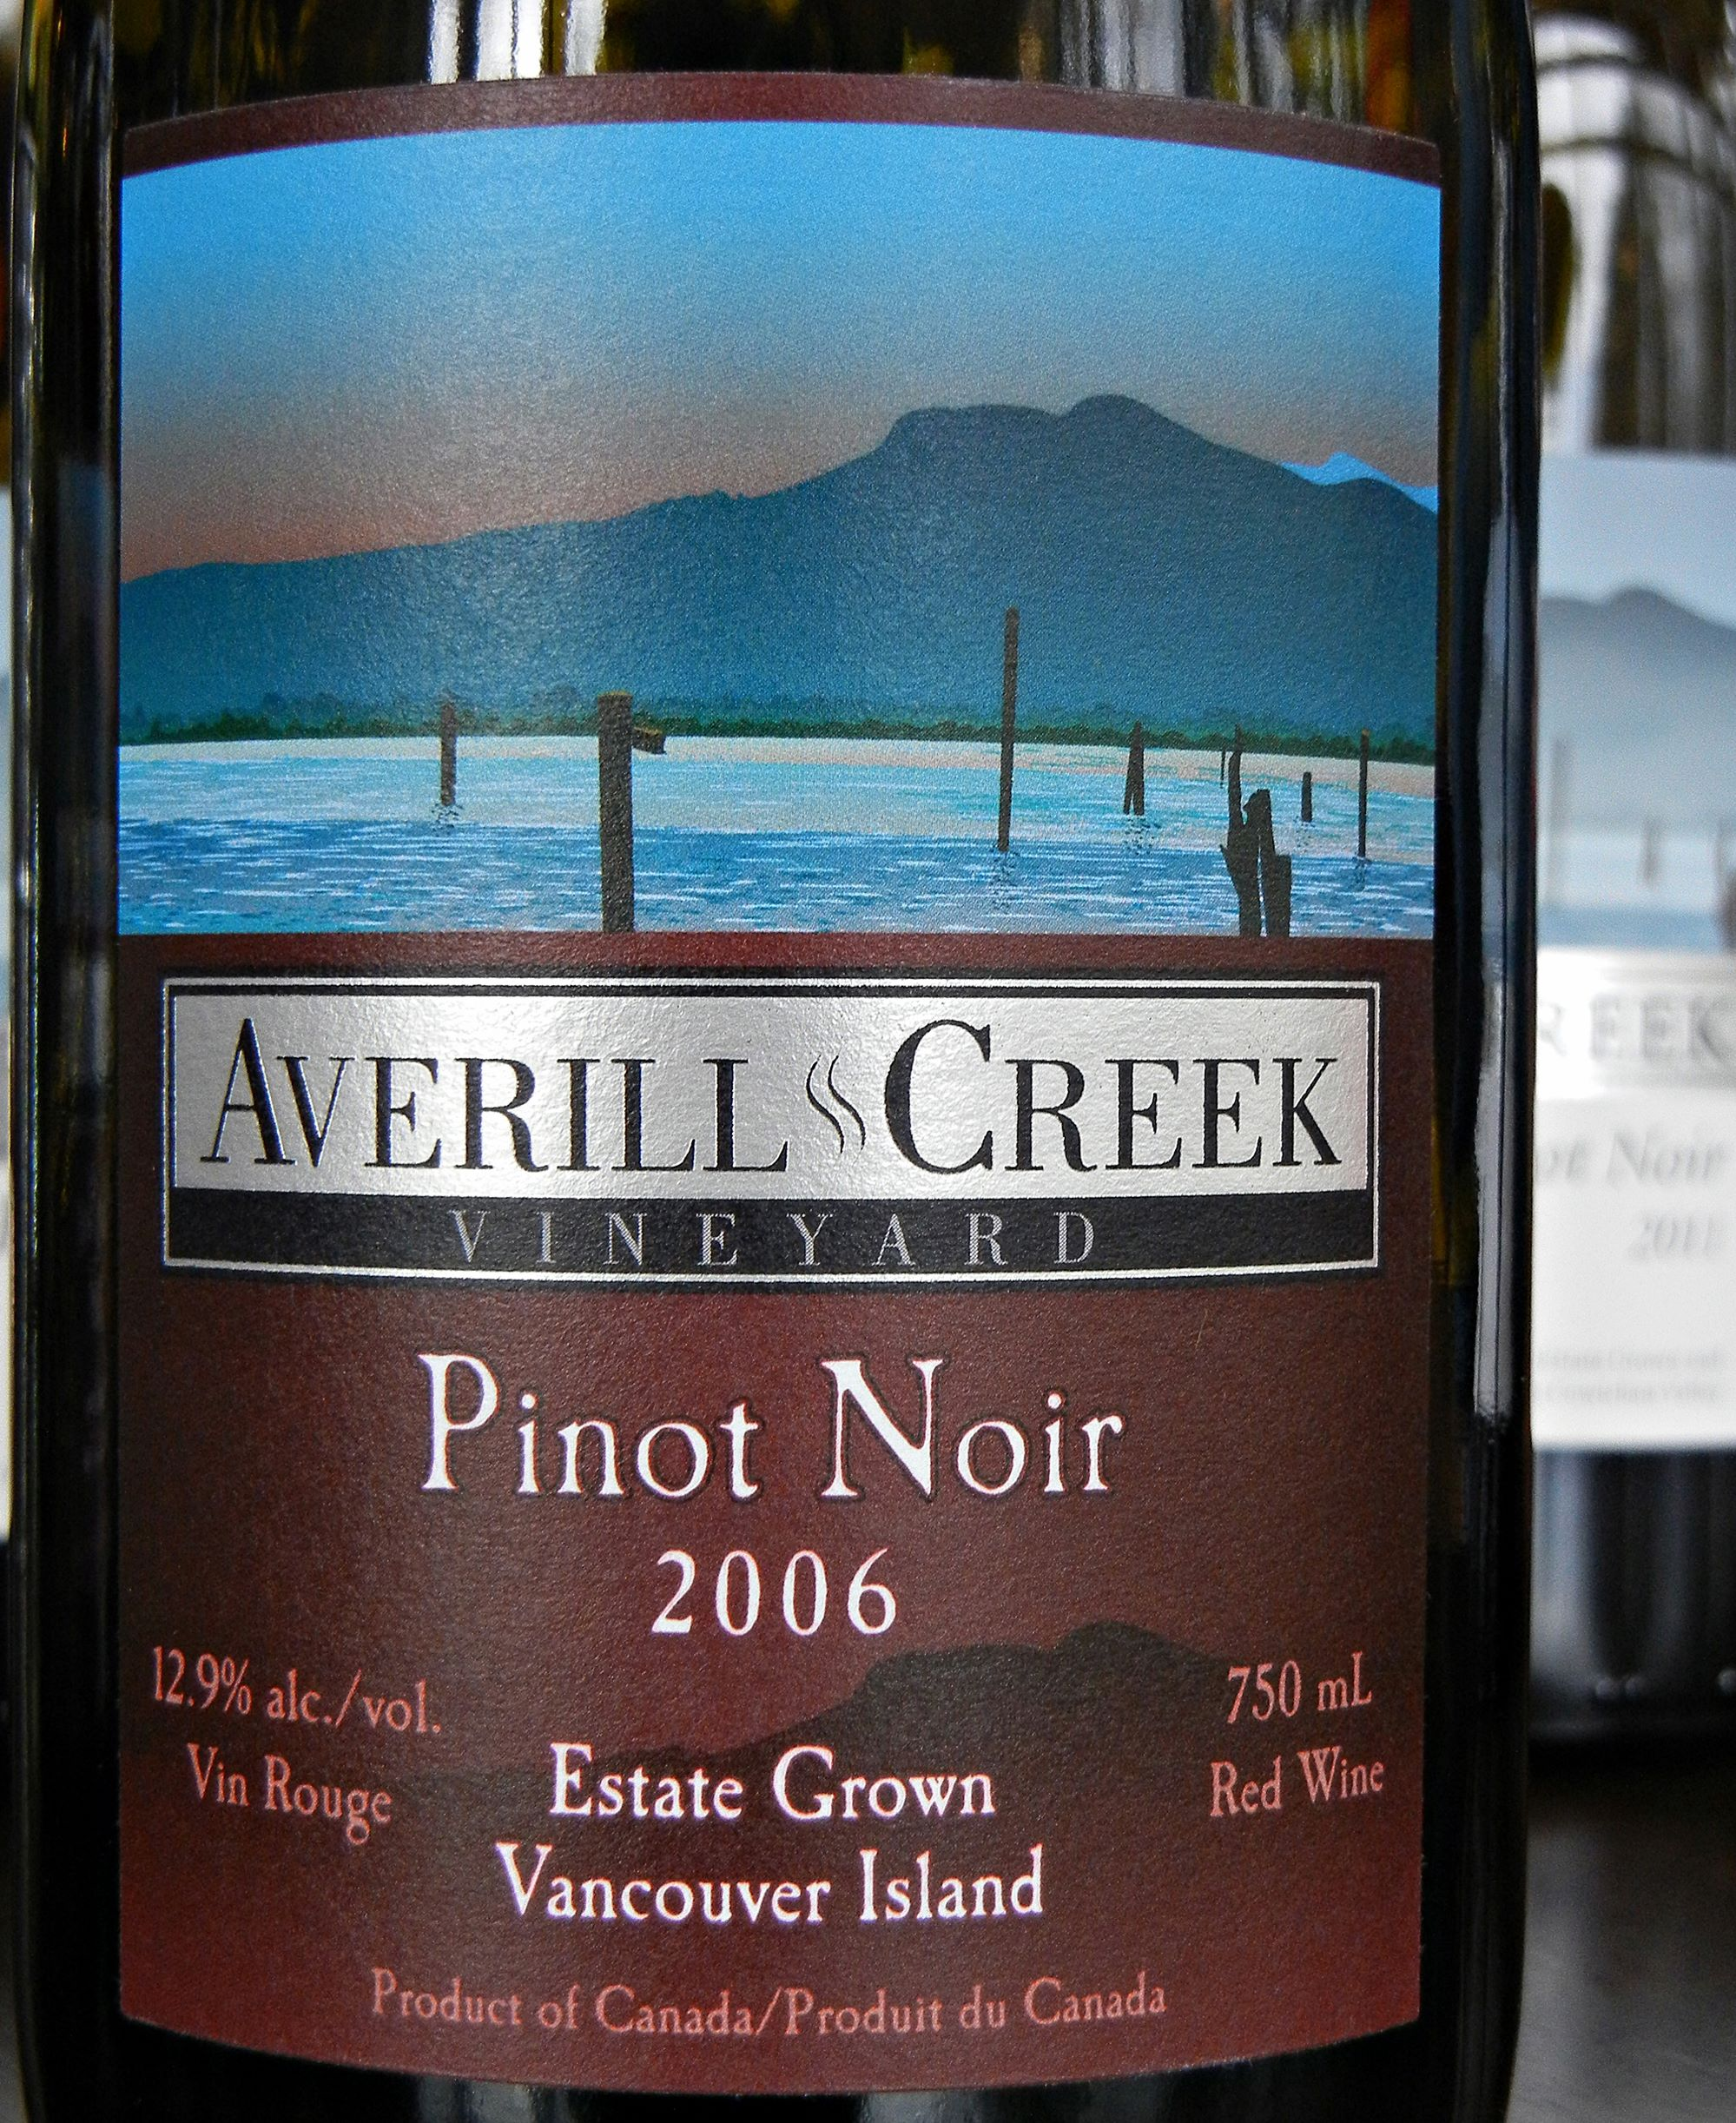 Averill Creek Pinot Noir 2006 Label - BC Pinot Noir Tasting Review 24